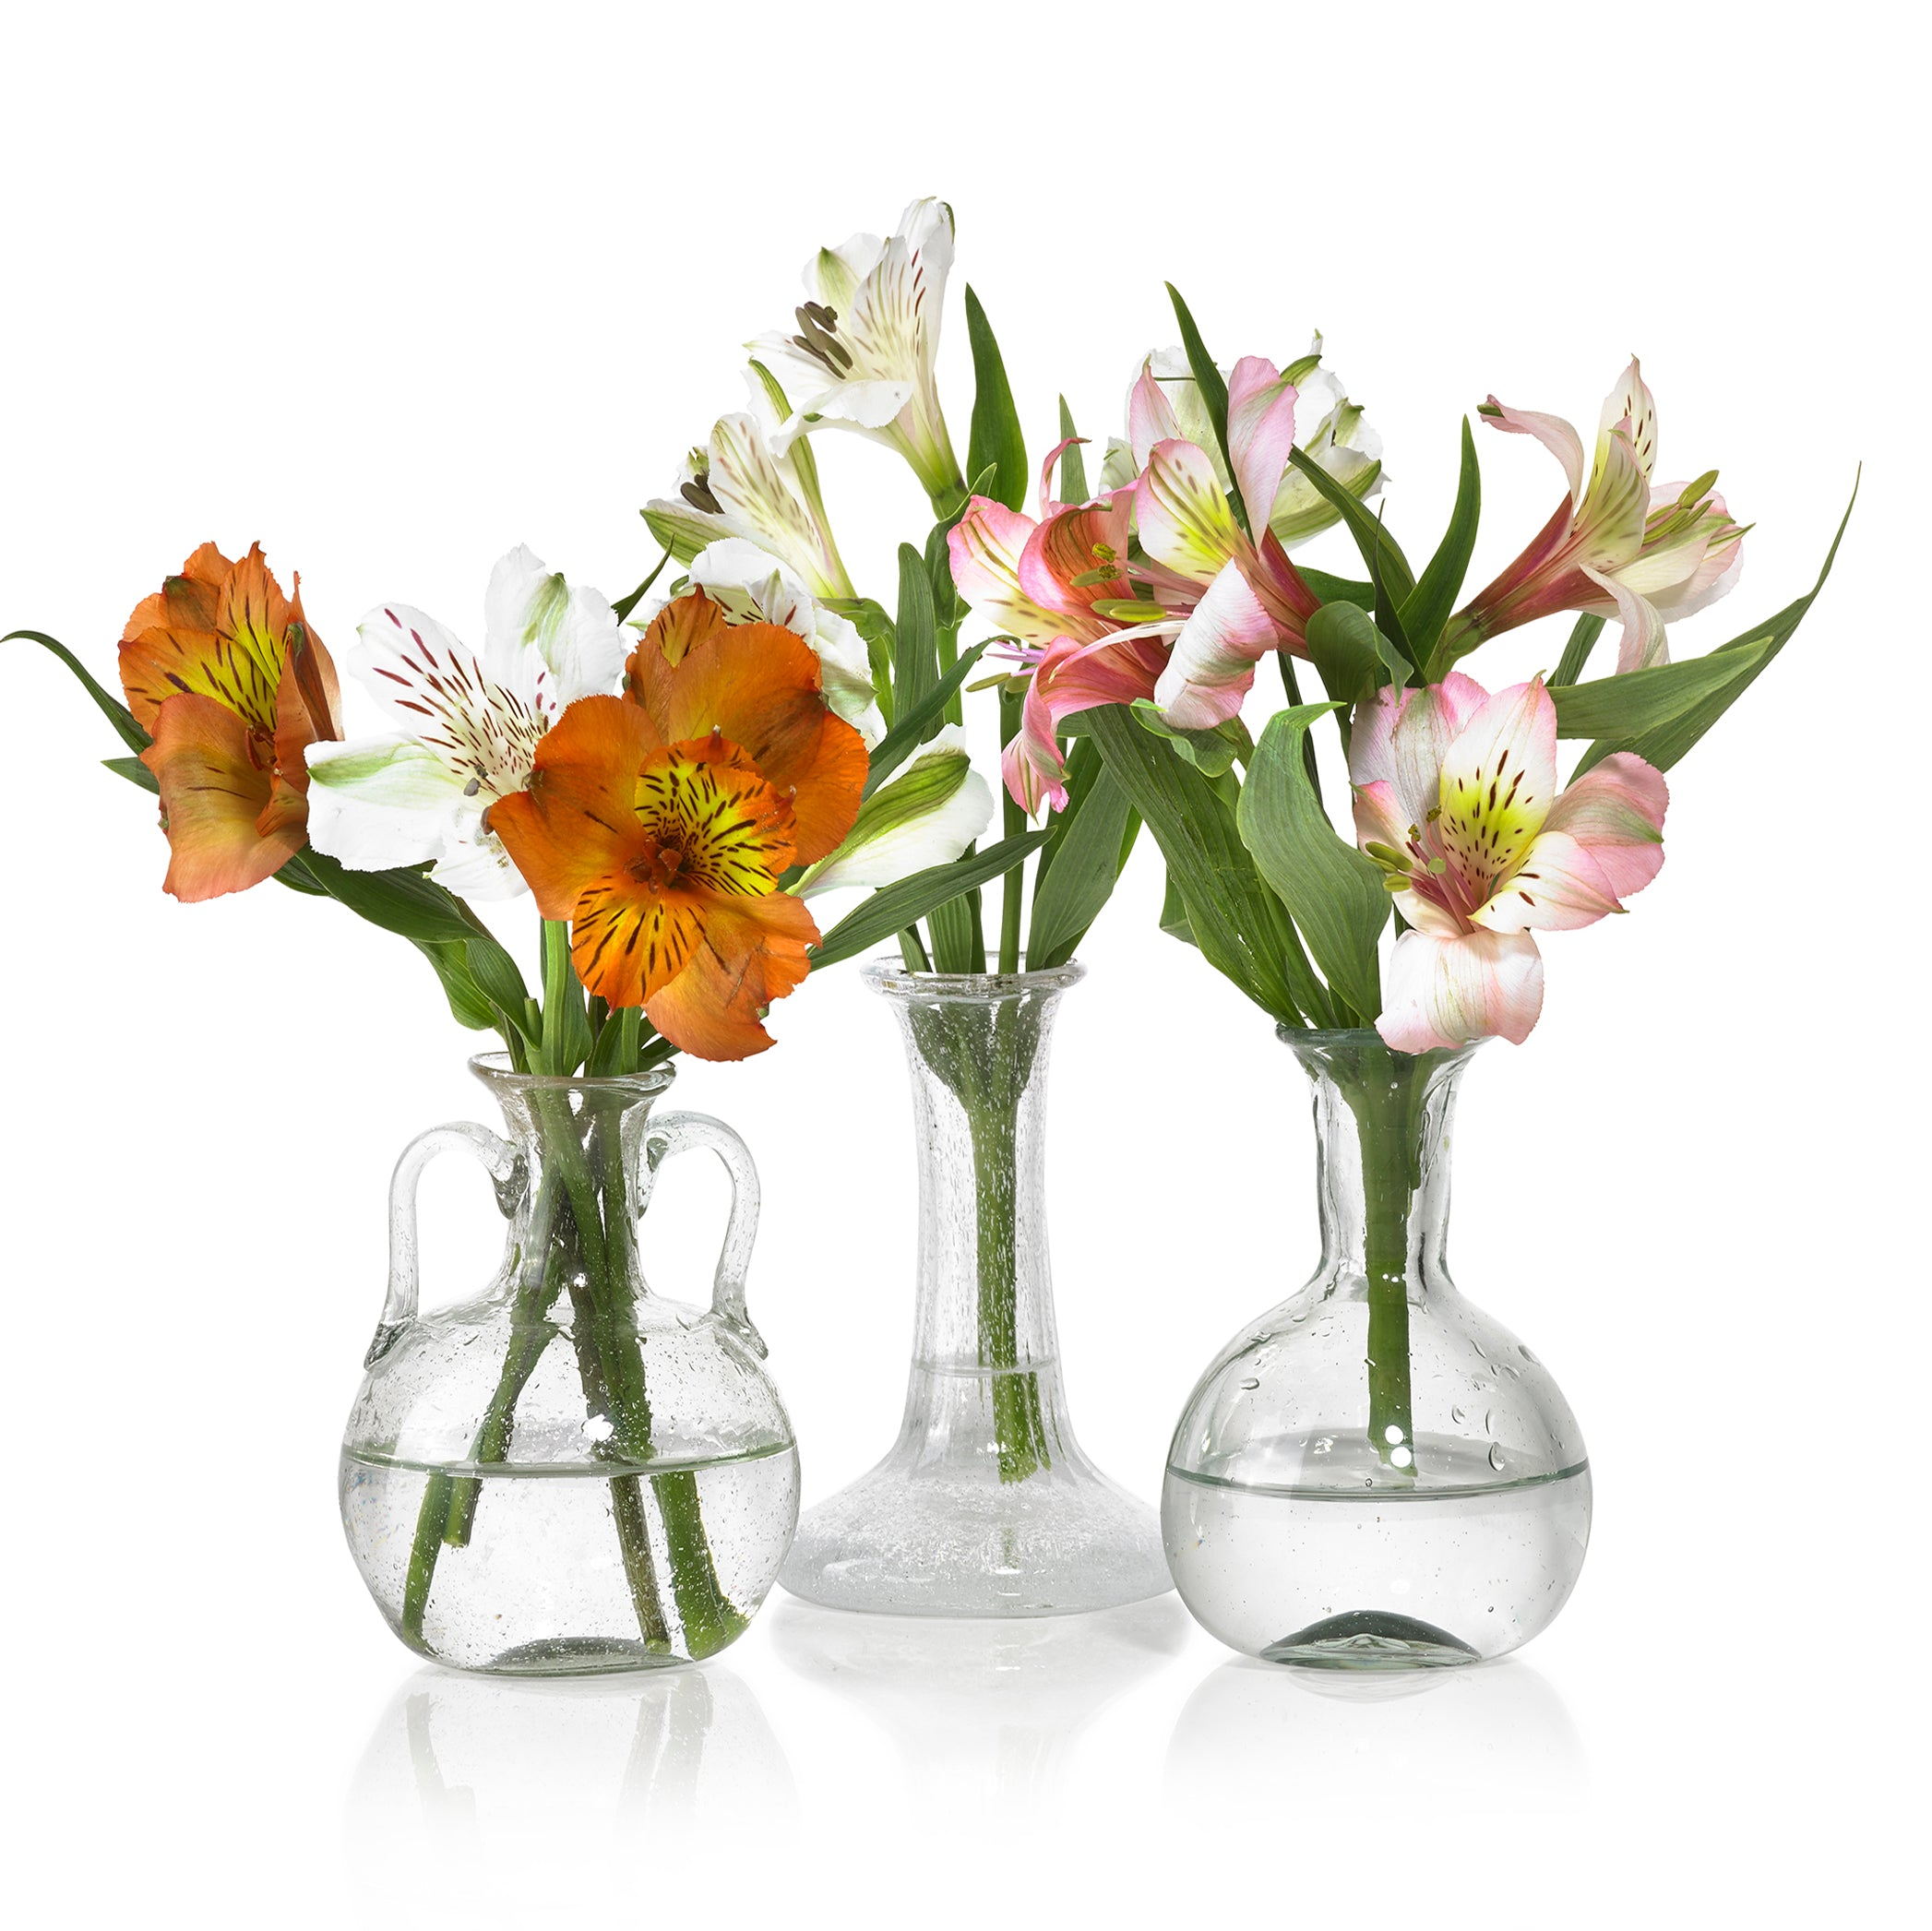 Handblown Petit Flower Vase